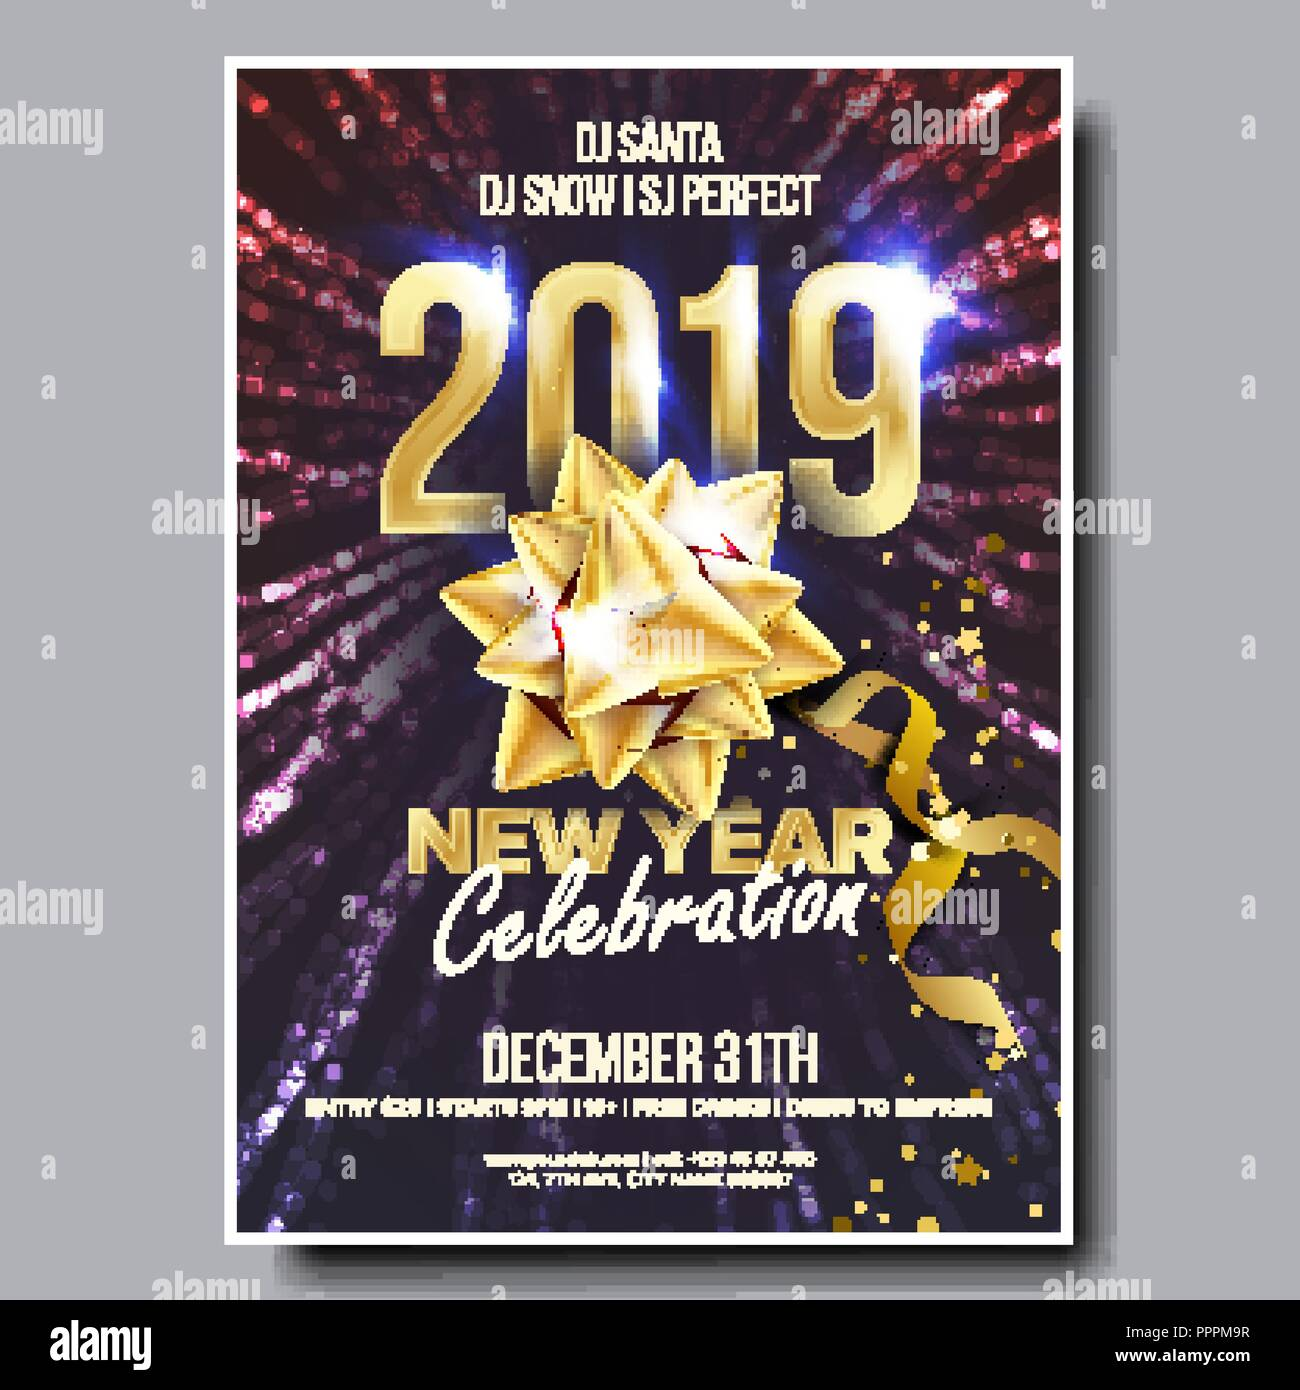 2019 party flyer poster vector happy new year celebration template